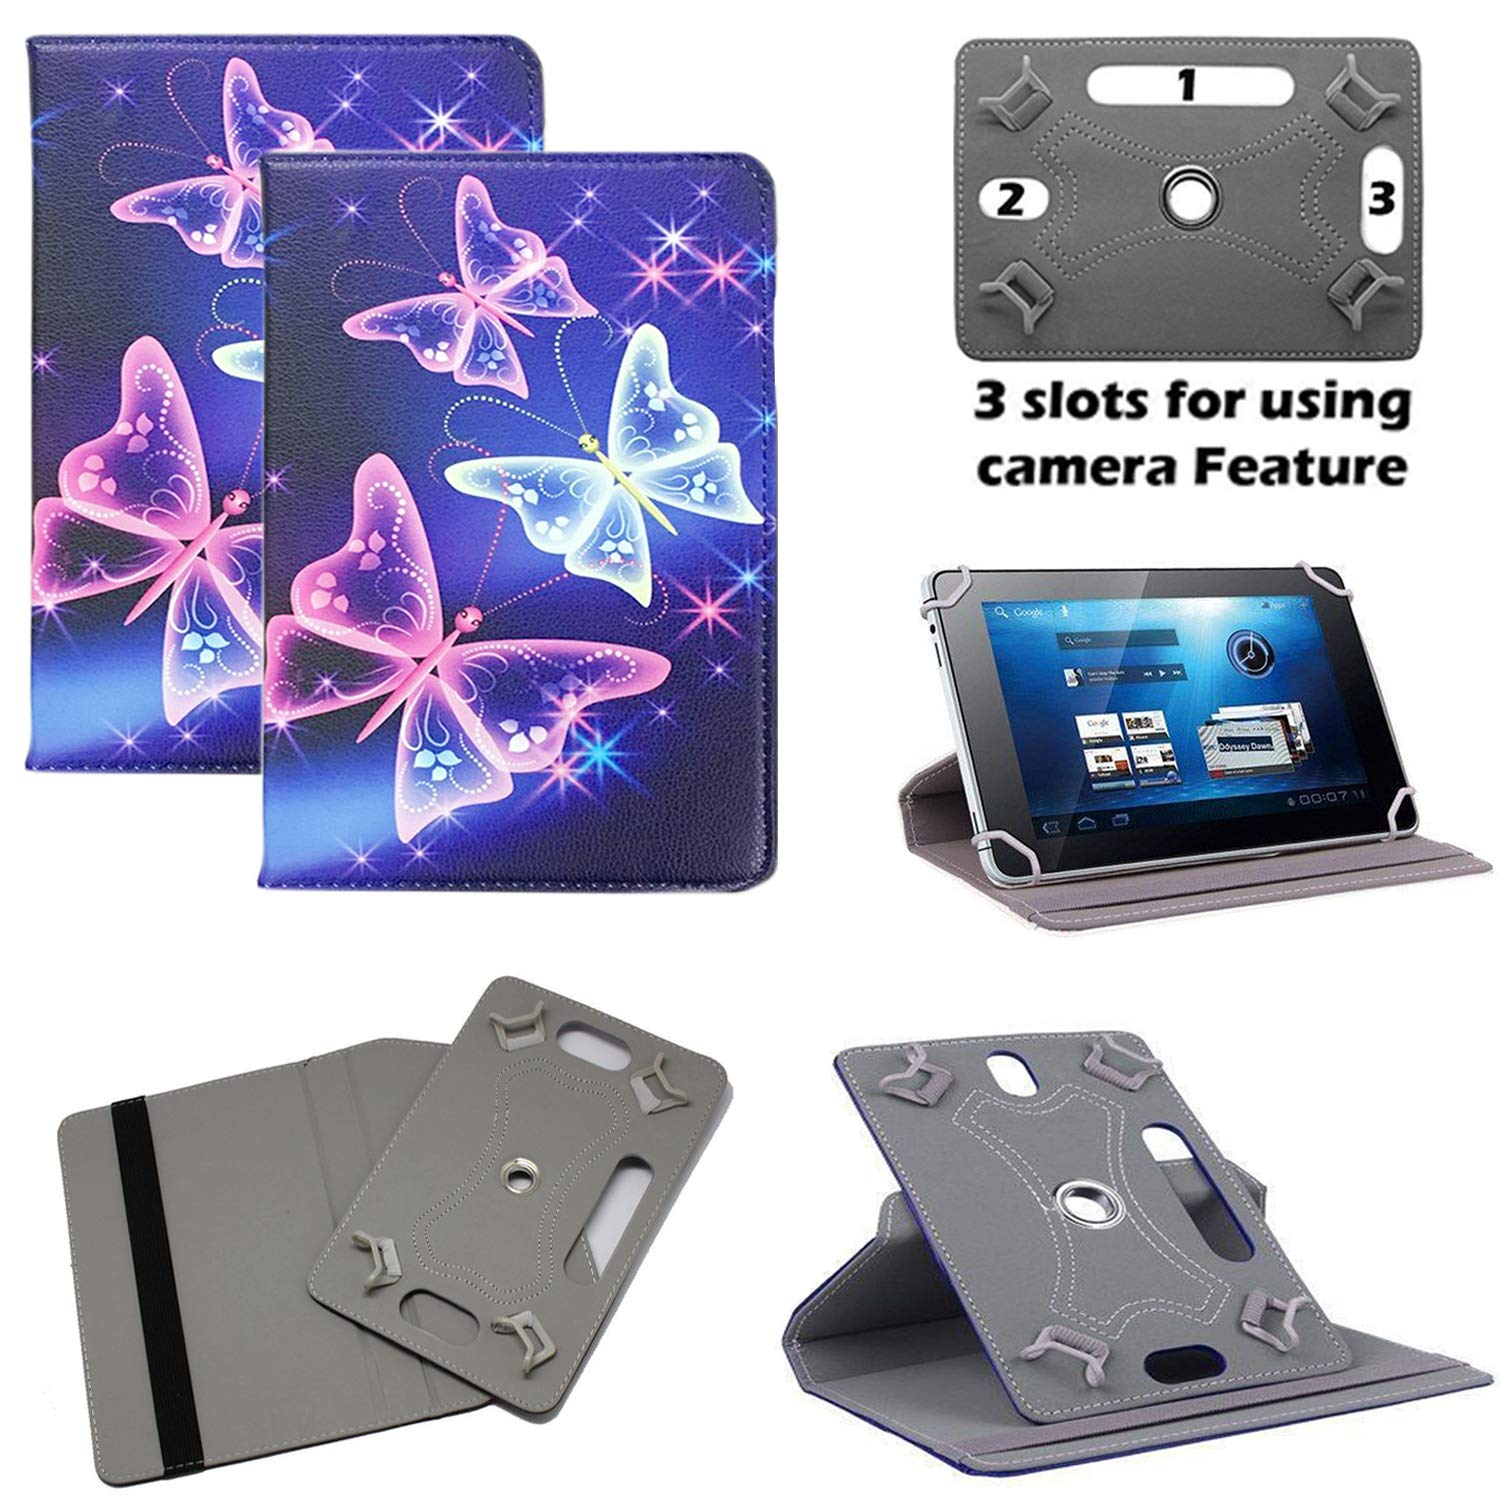 Universal PU Leather 360/° Rotational Stand Folio Case Cover Fits All Android Samsung For 10 inch // 10.1 inch, Plain Purple Flip Huawei Sony Stylus Pen Lenovo Acer Toshiba Tablets tab devices